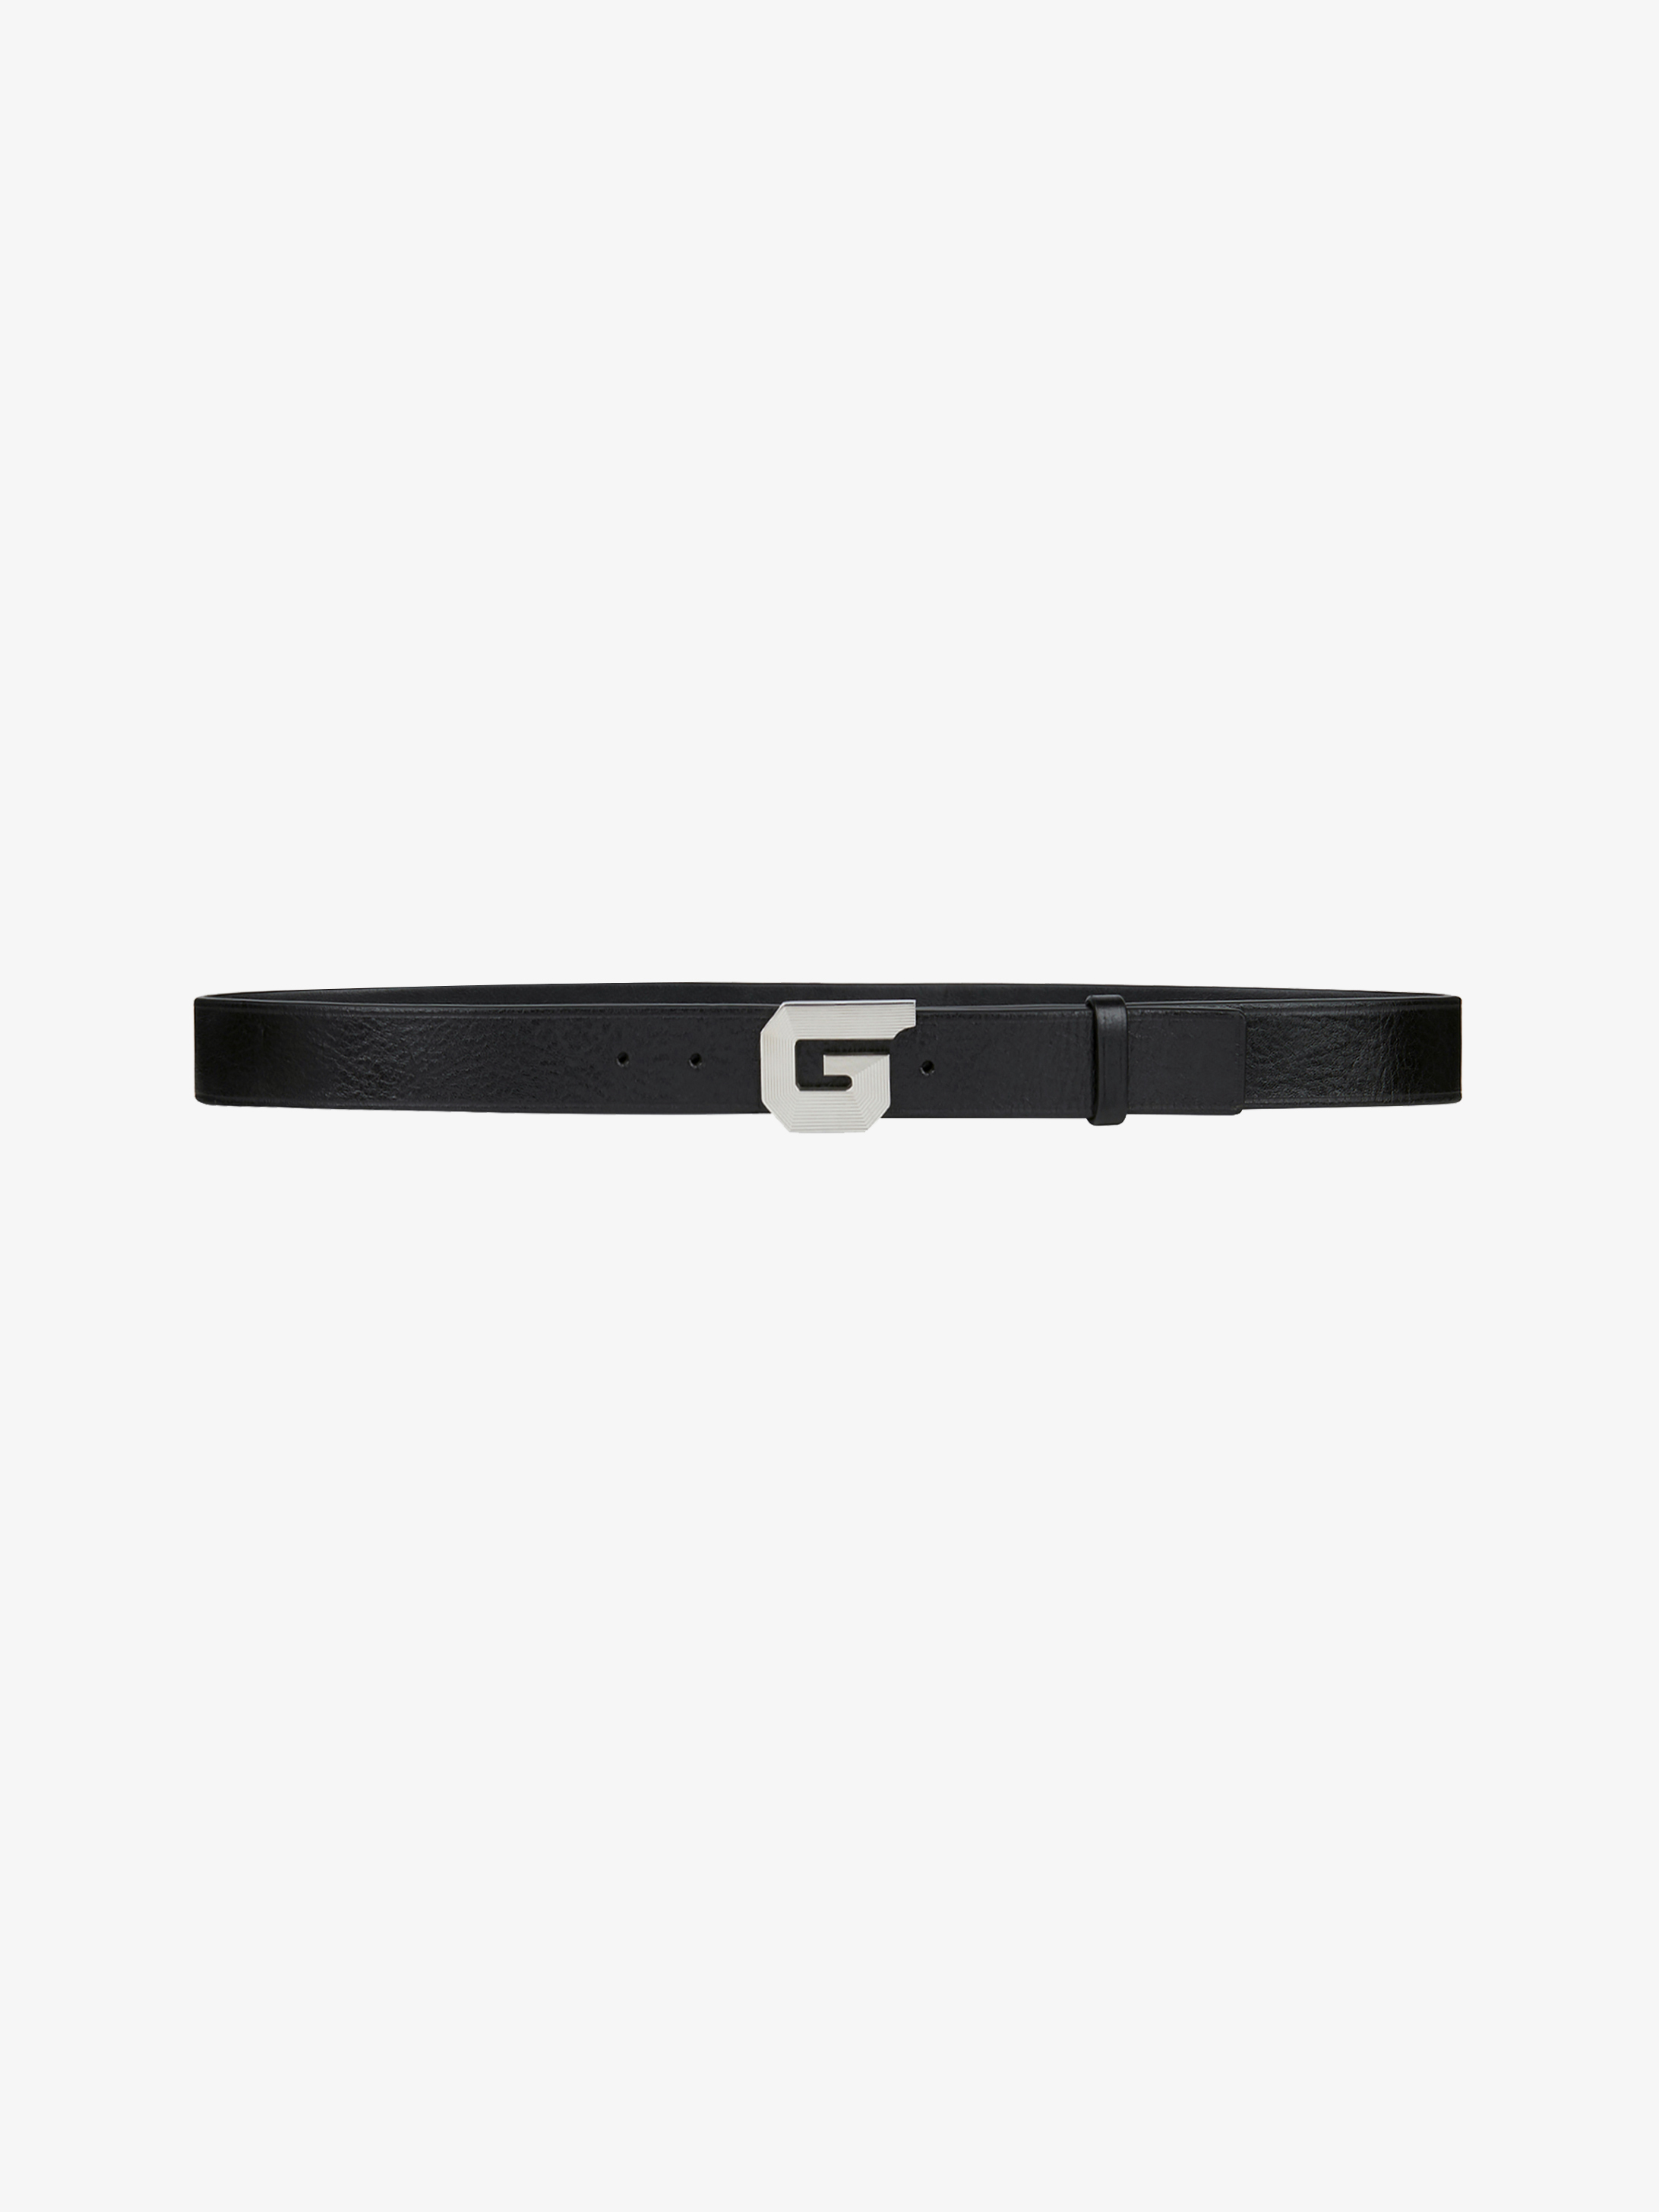 G whistle buckle belt in leather